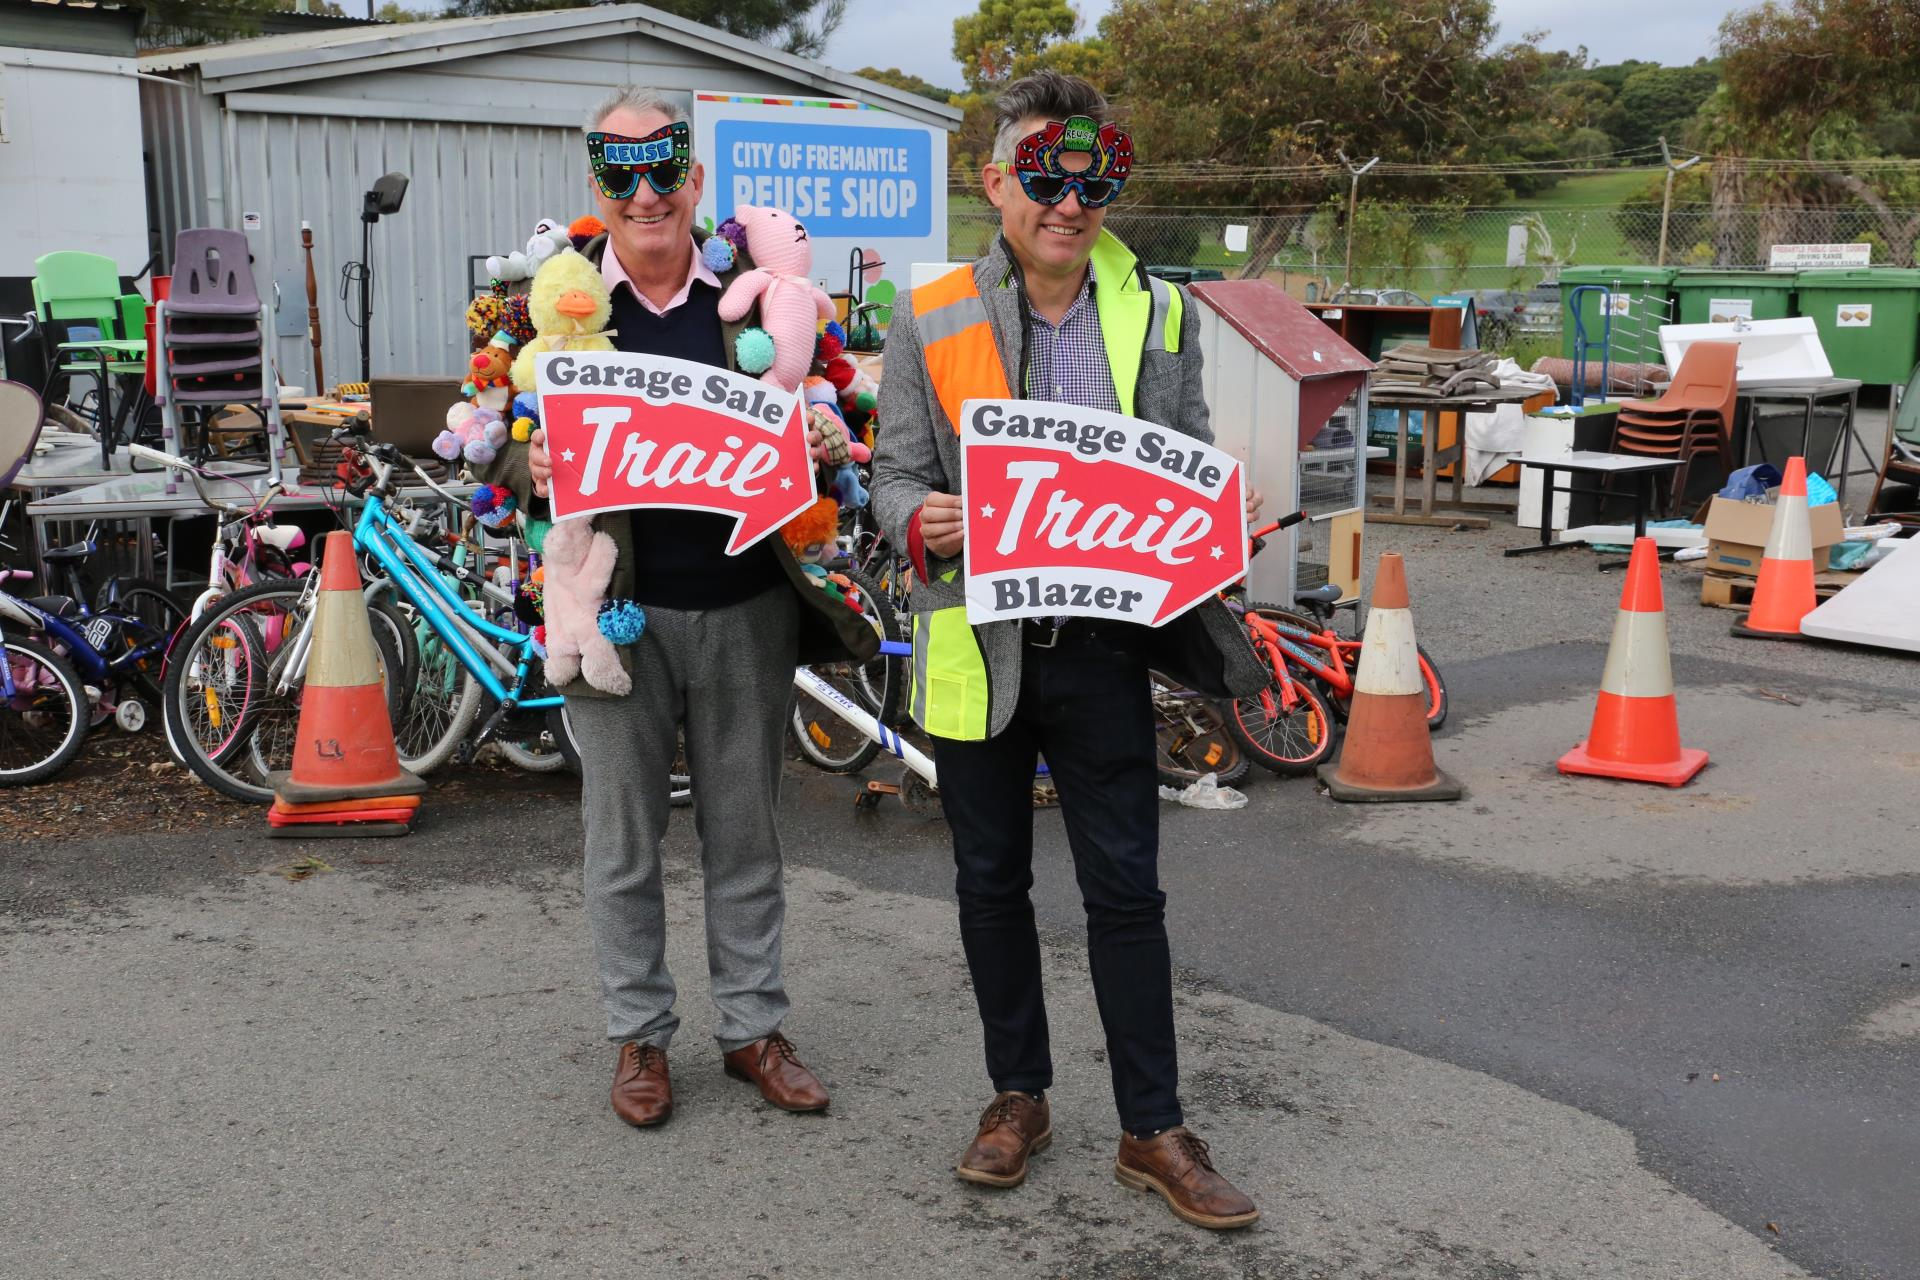 Become an East Freo Garage Sale Trailblazer - Community Garage Sale